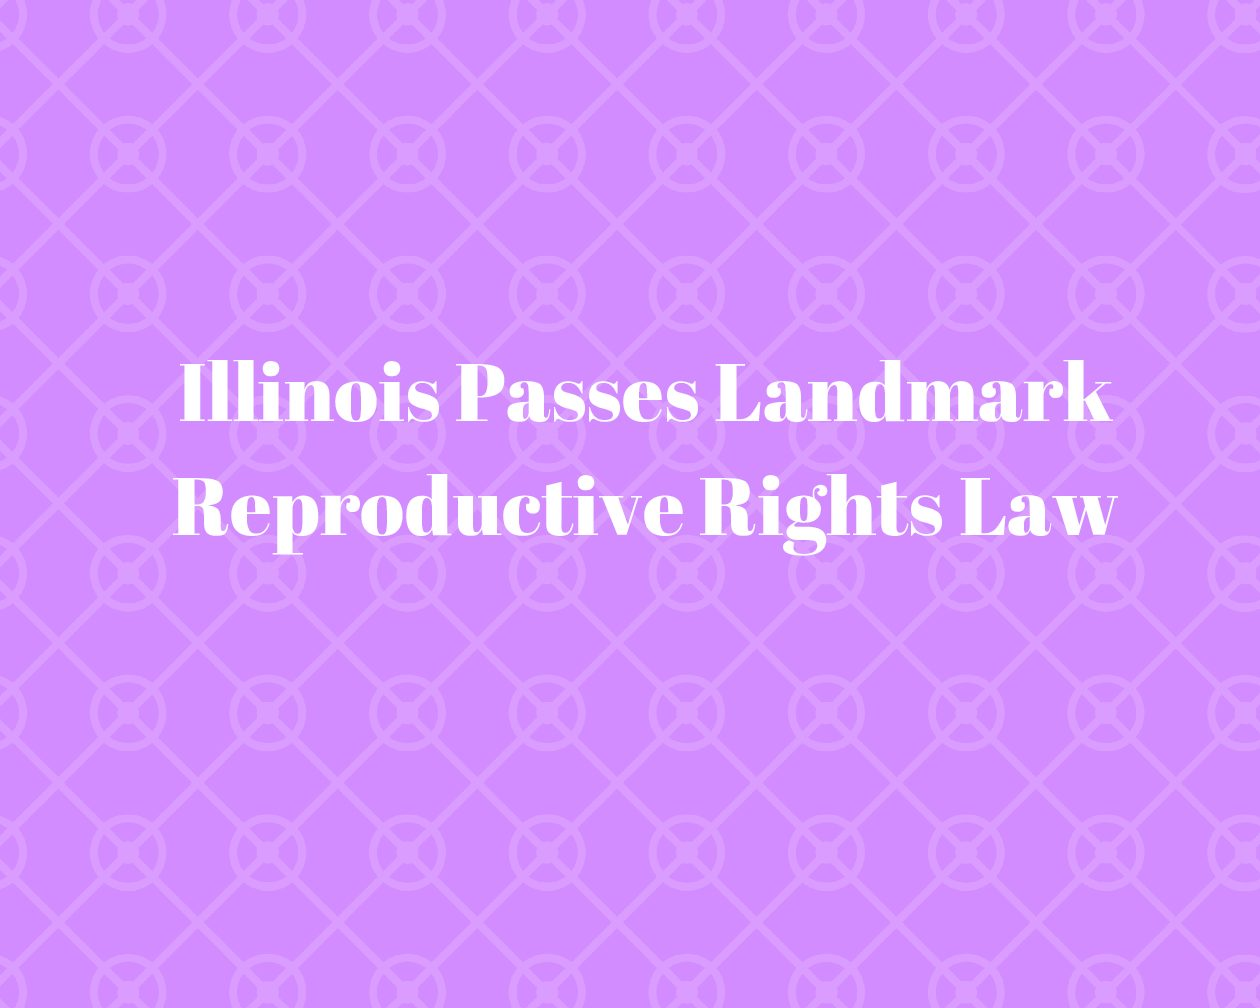 Illinois Passes Landmark Reproductive Rights Law